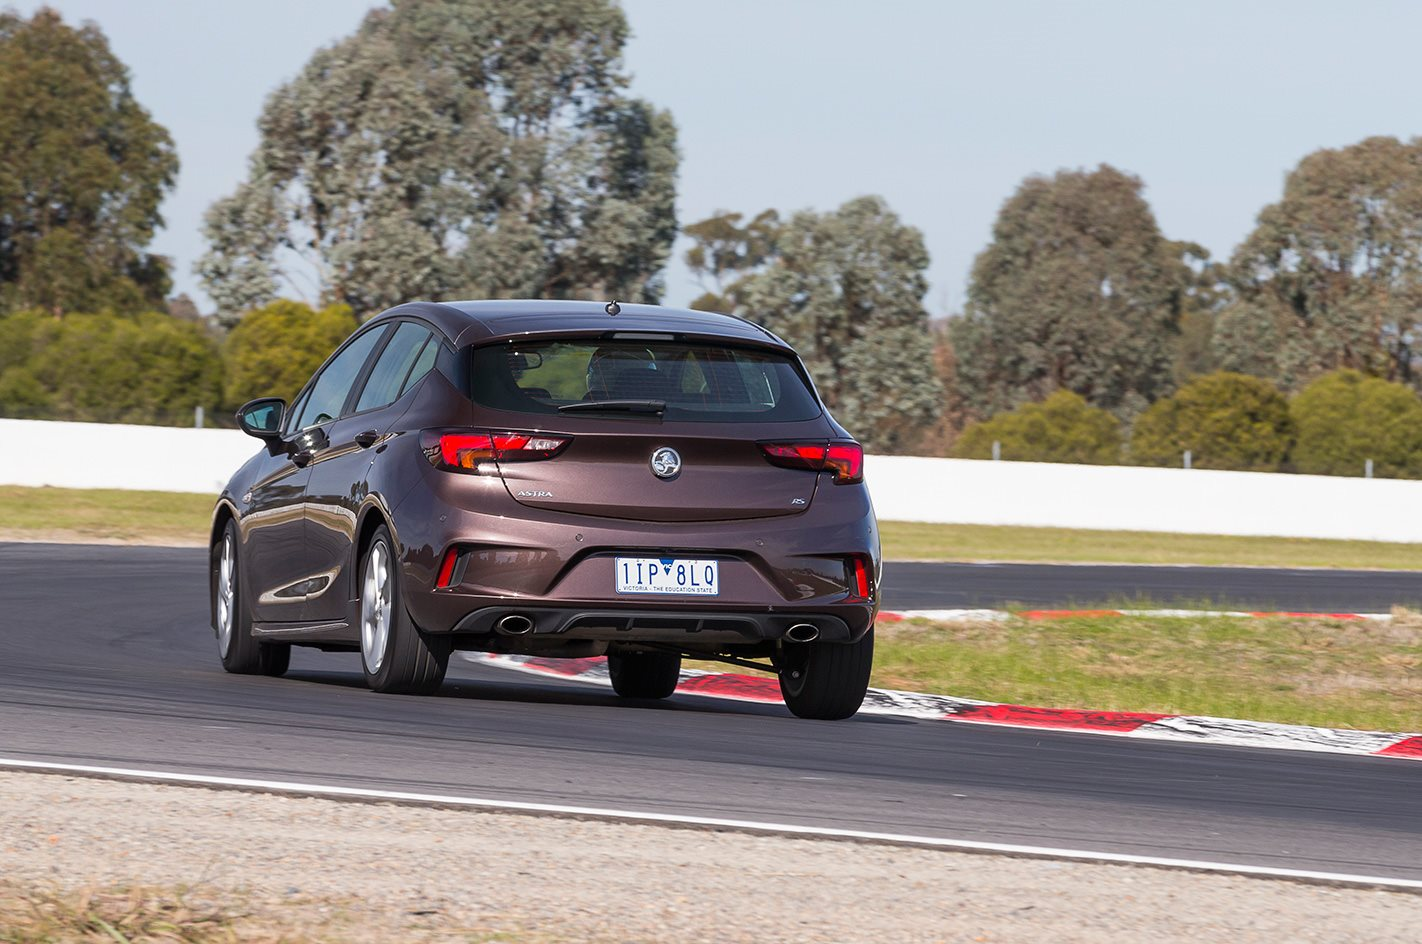 2017 Holden Astra RS rear